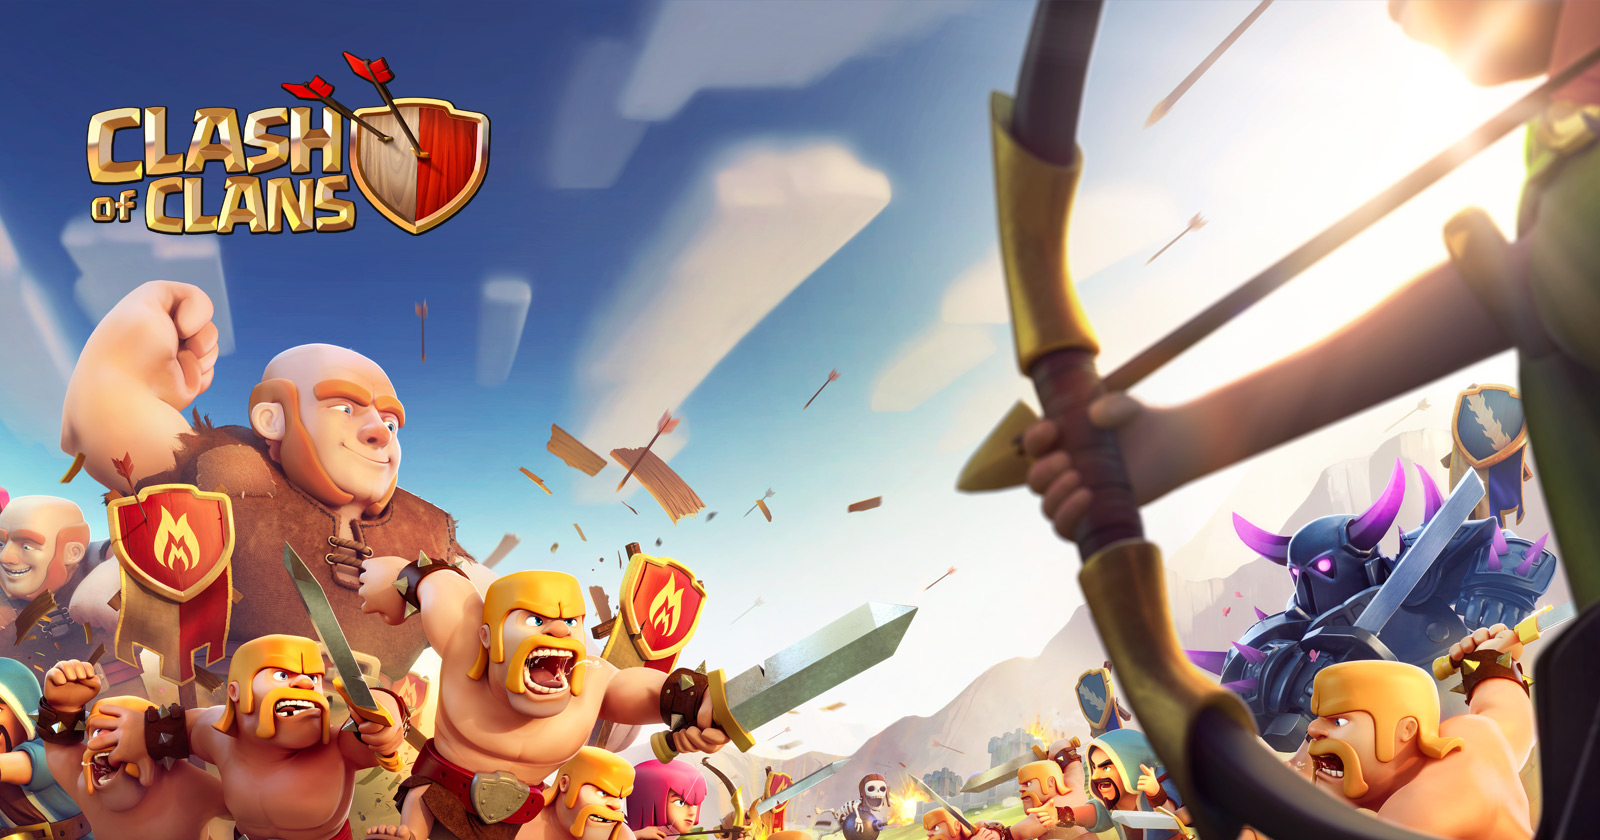 Clash of Clans Mobil Oyun İncelemesi